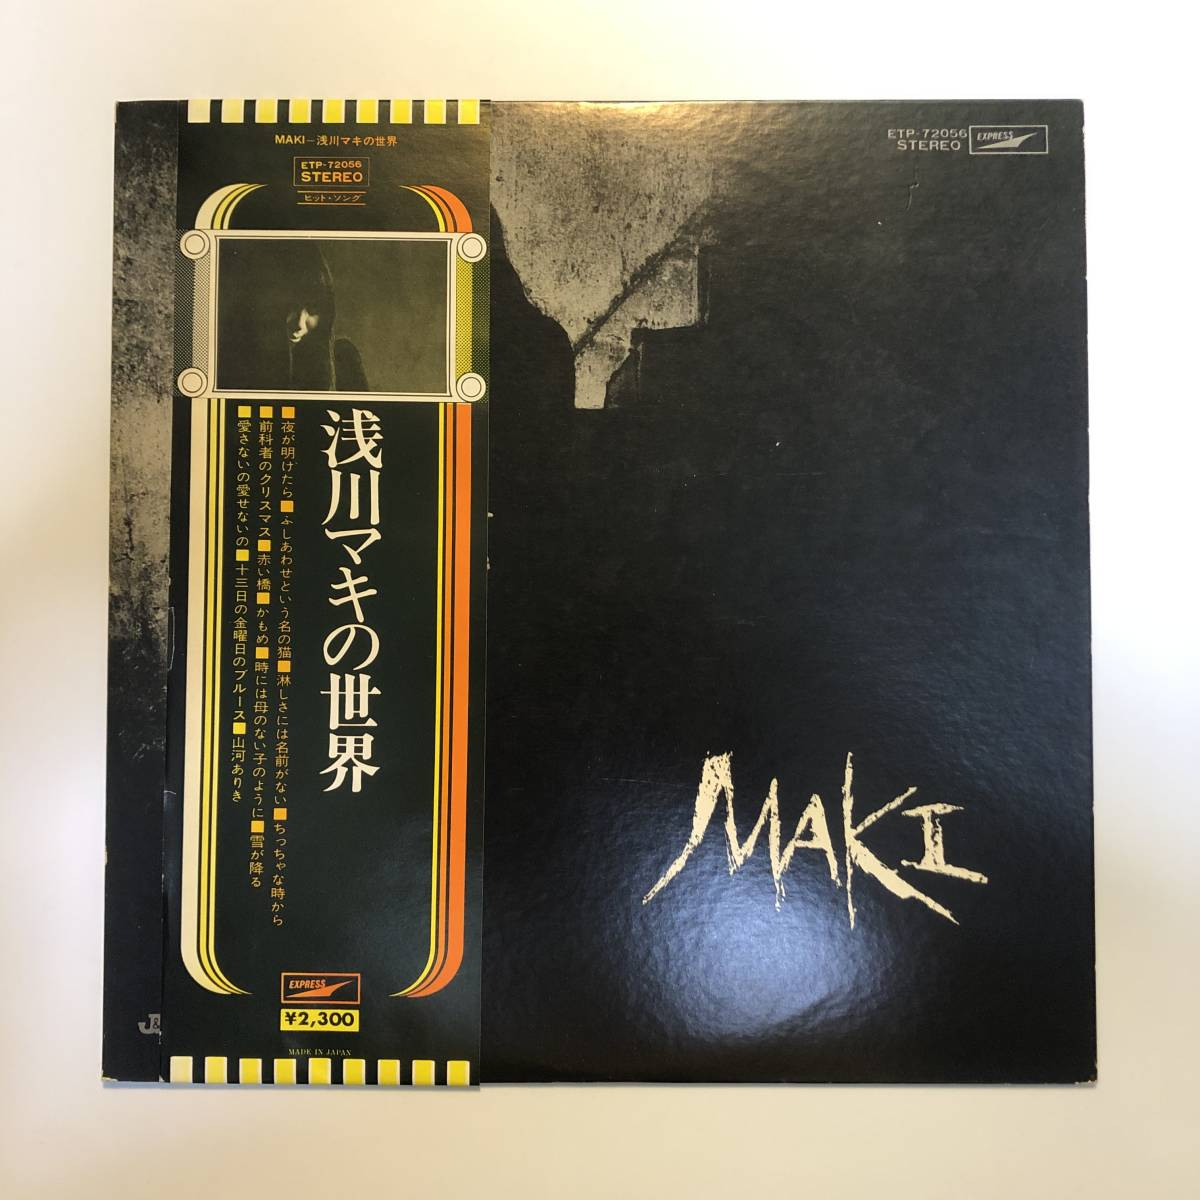 LP*浅川マキの世界 product details | Yahoo! Auctions Japan proxy ...